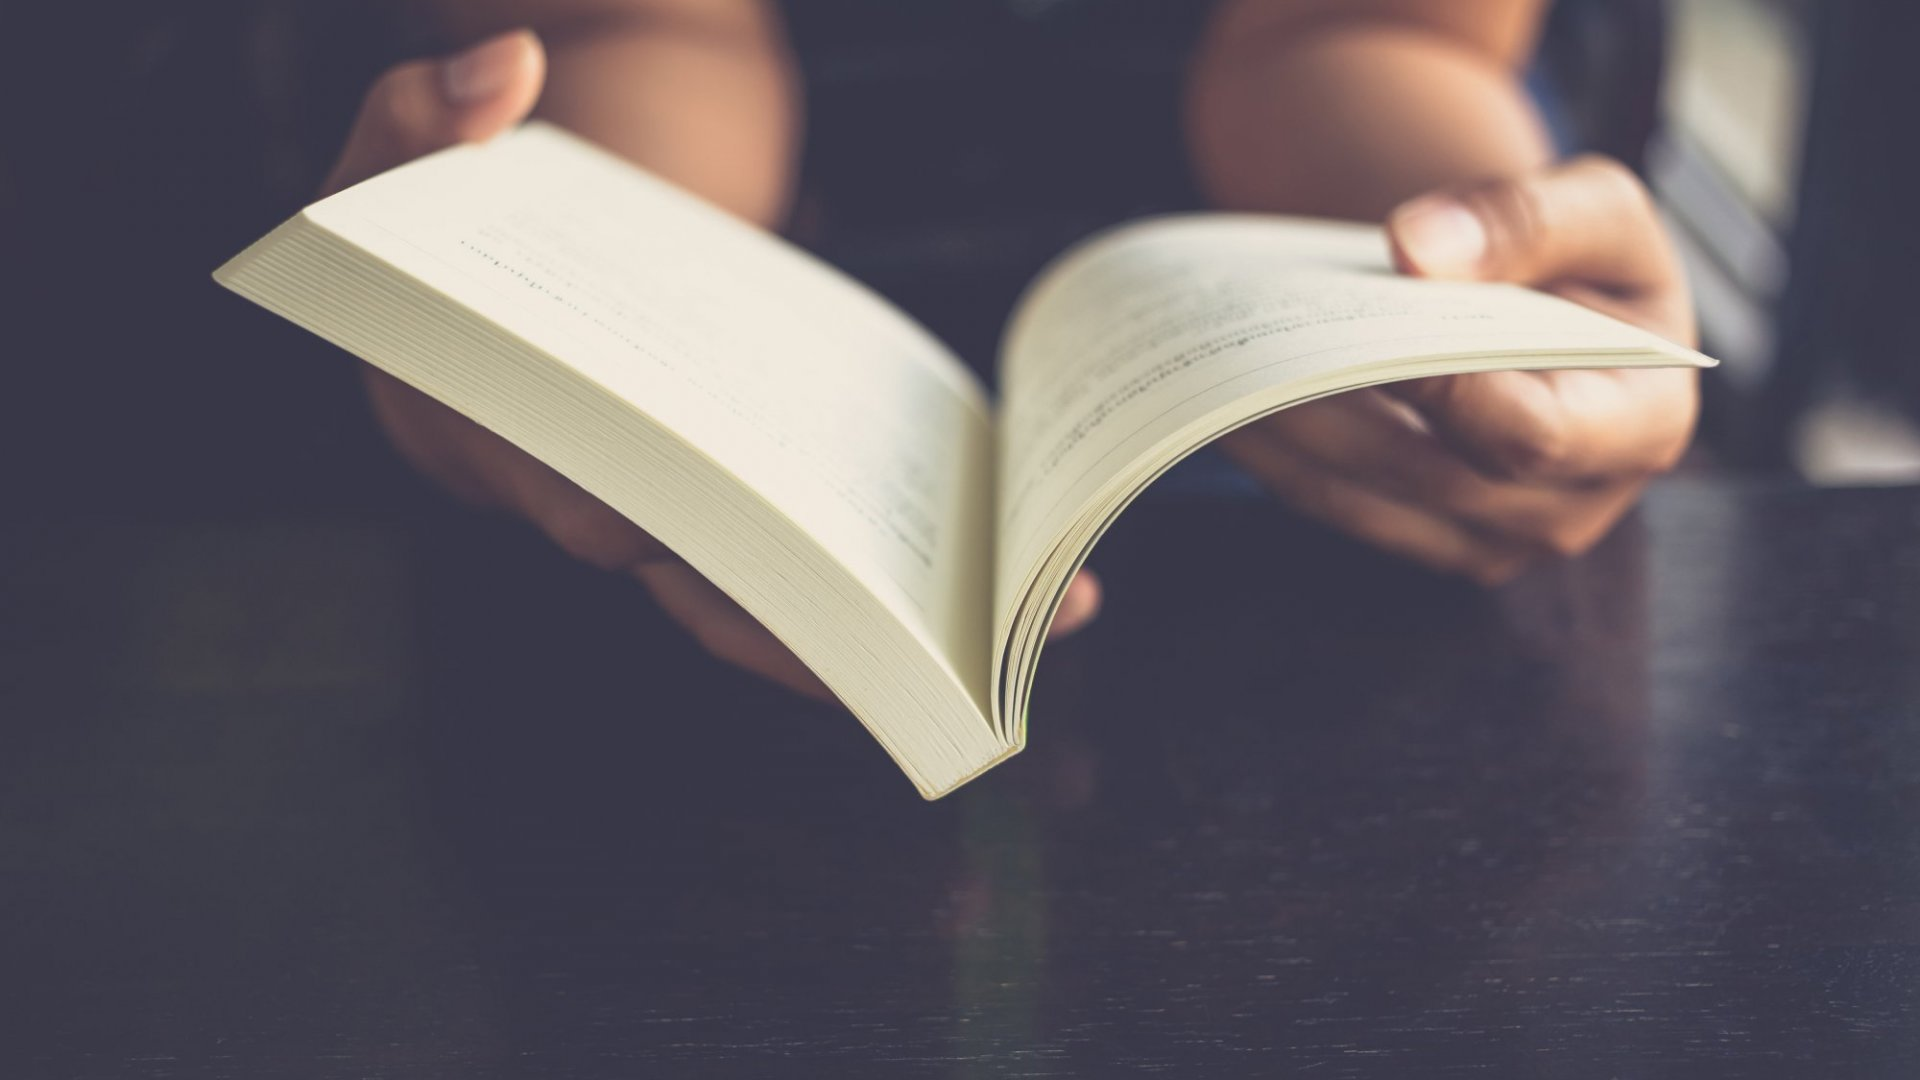 8 Books That Will Make You a Stronger Leader